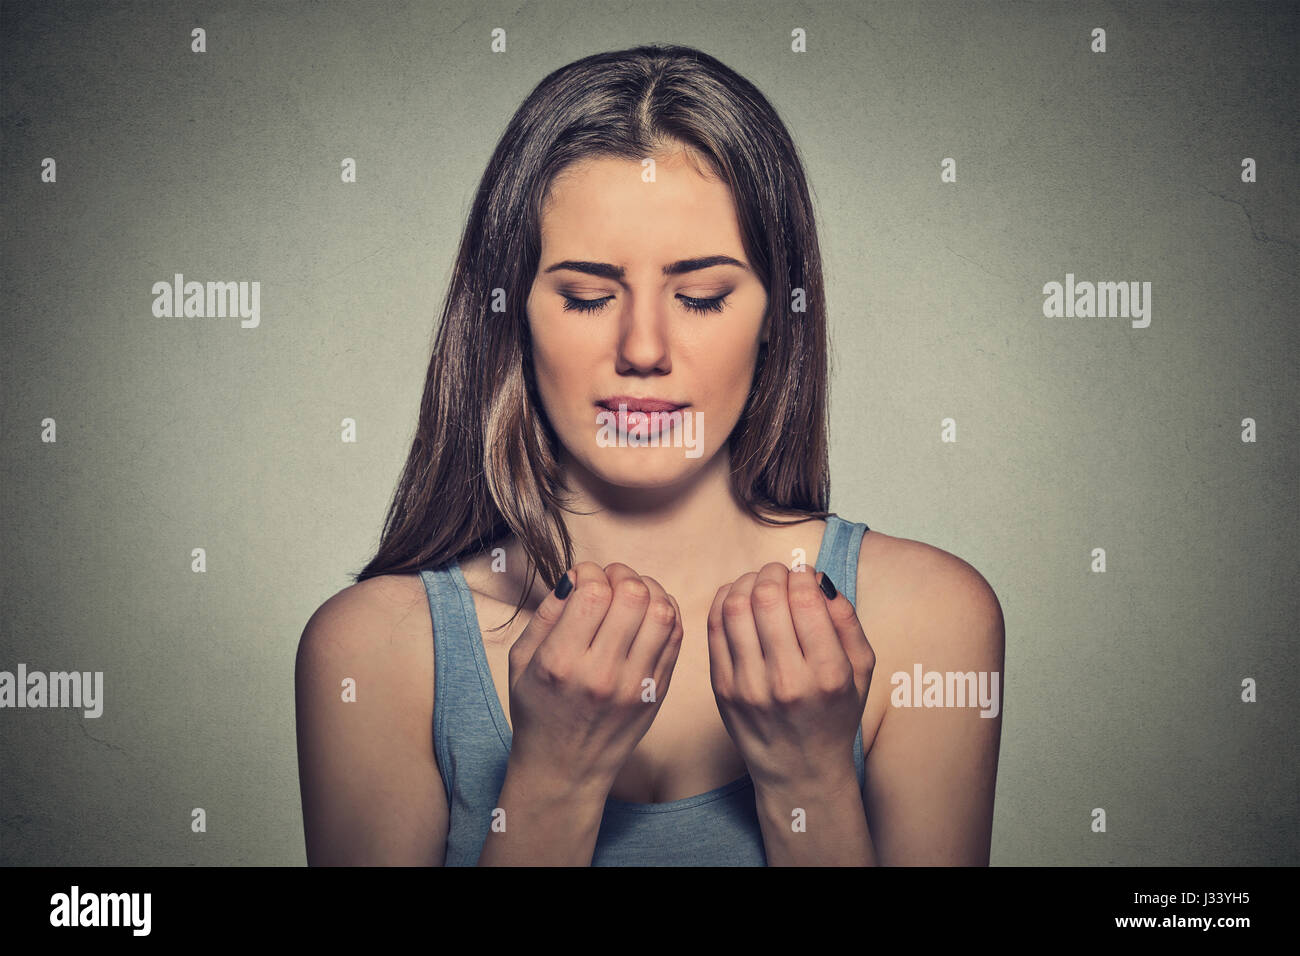 Worried woman looking at hands fingers nails obsessing about cleanliness isolated on grey background. Negative human - Stock Image